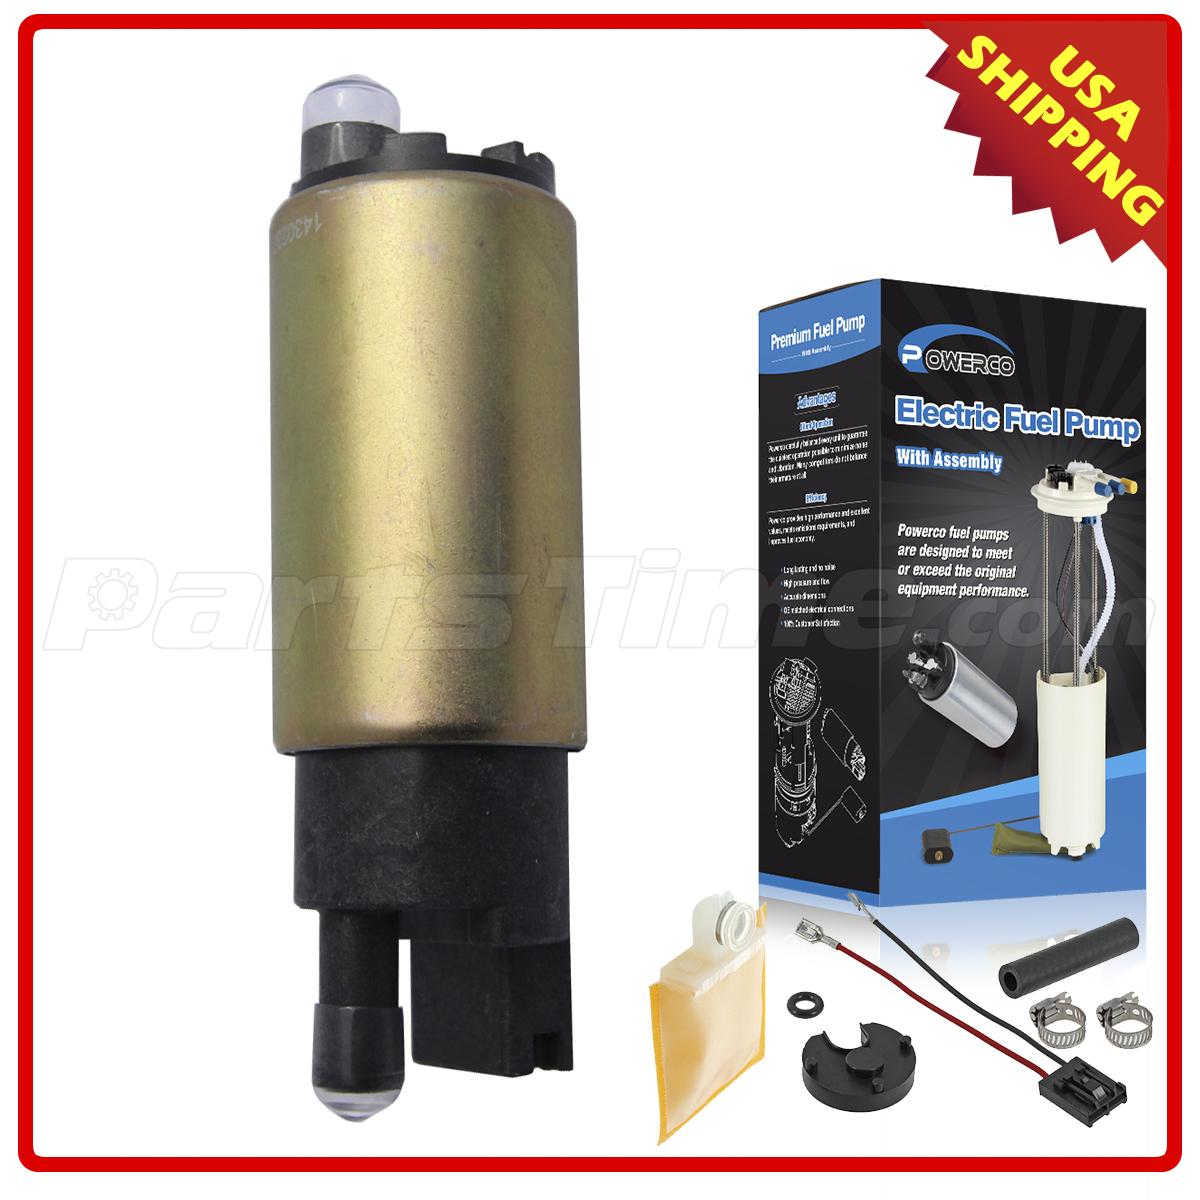 E8404 E8418 E8419 E8454 E8455 Fuel Pump For 1994 1993